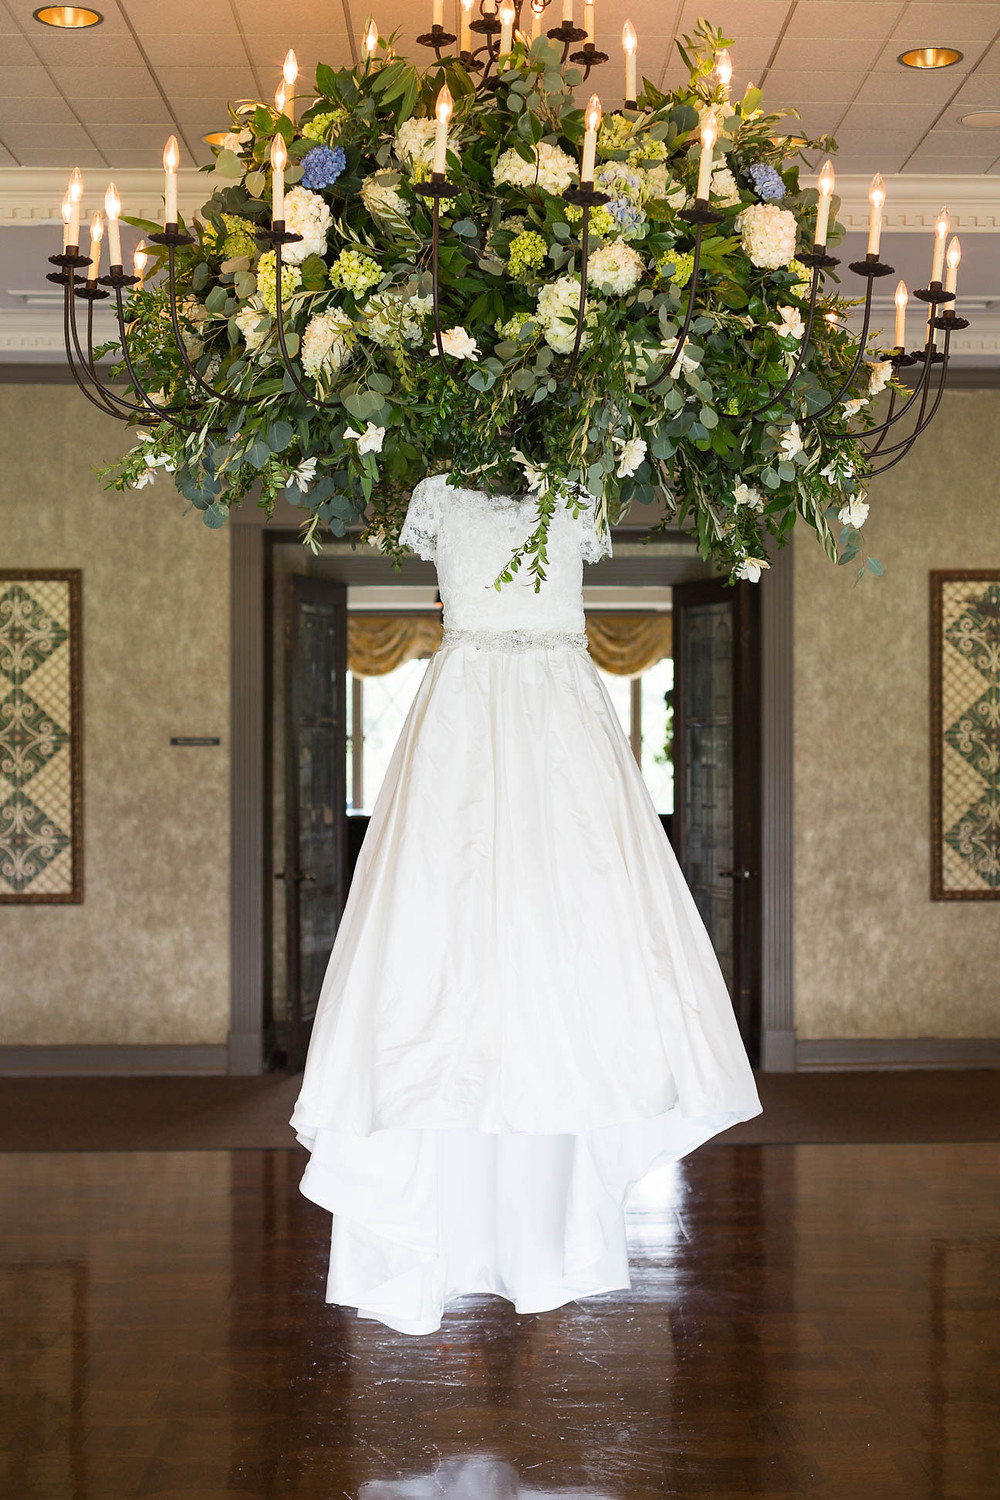 brides wedding dress hangs on floral chandelier